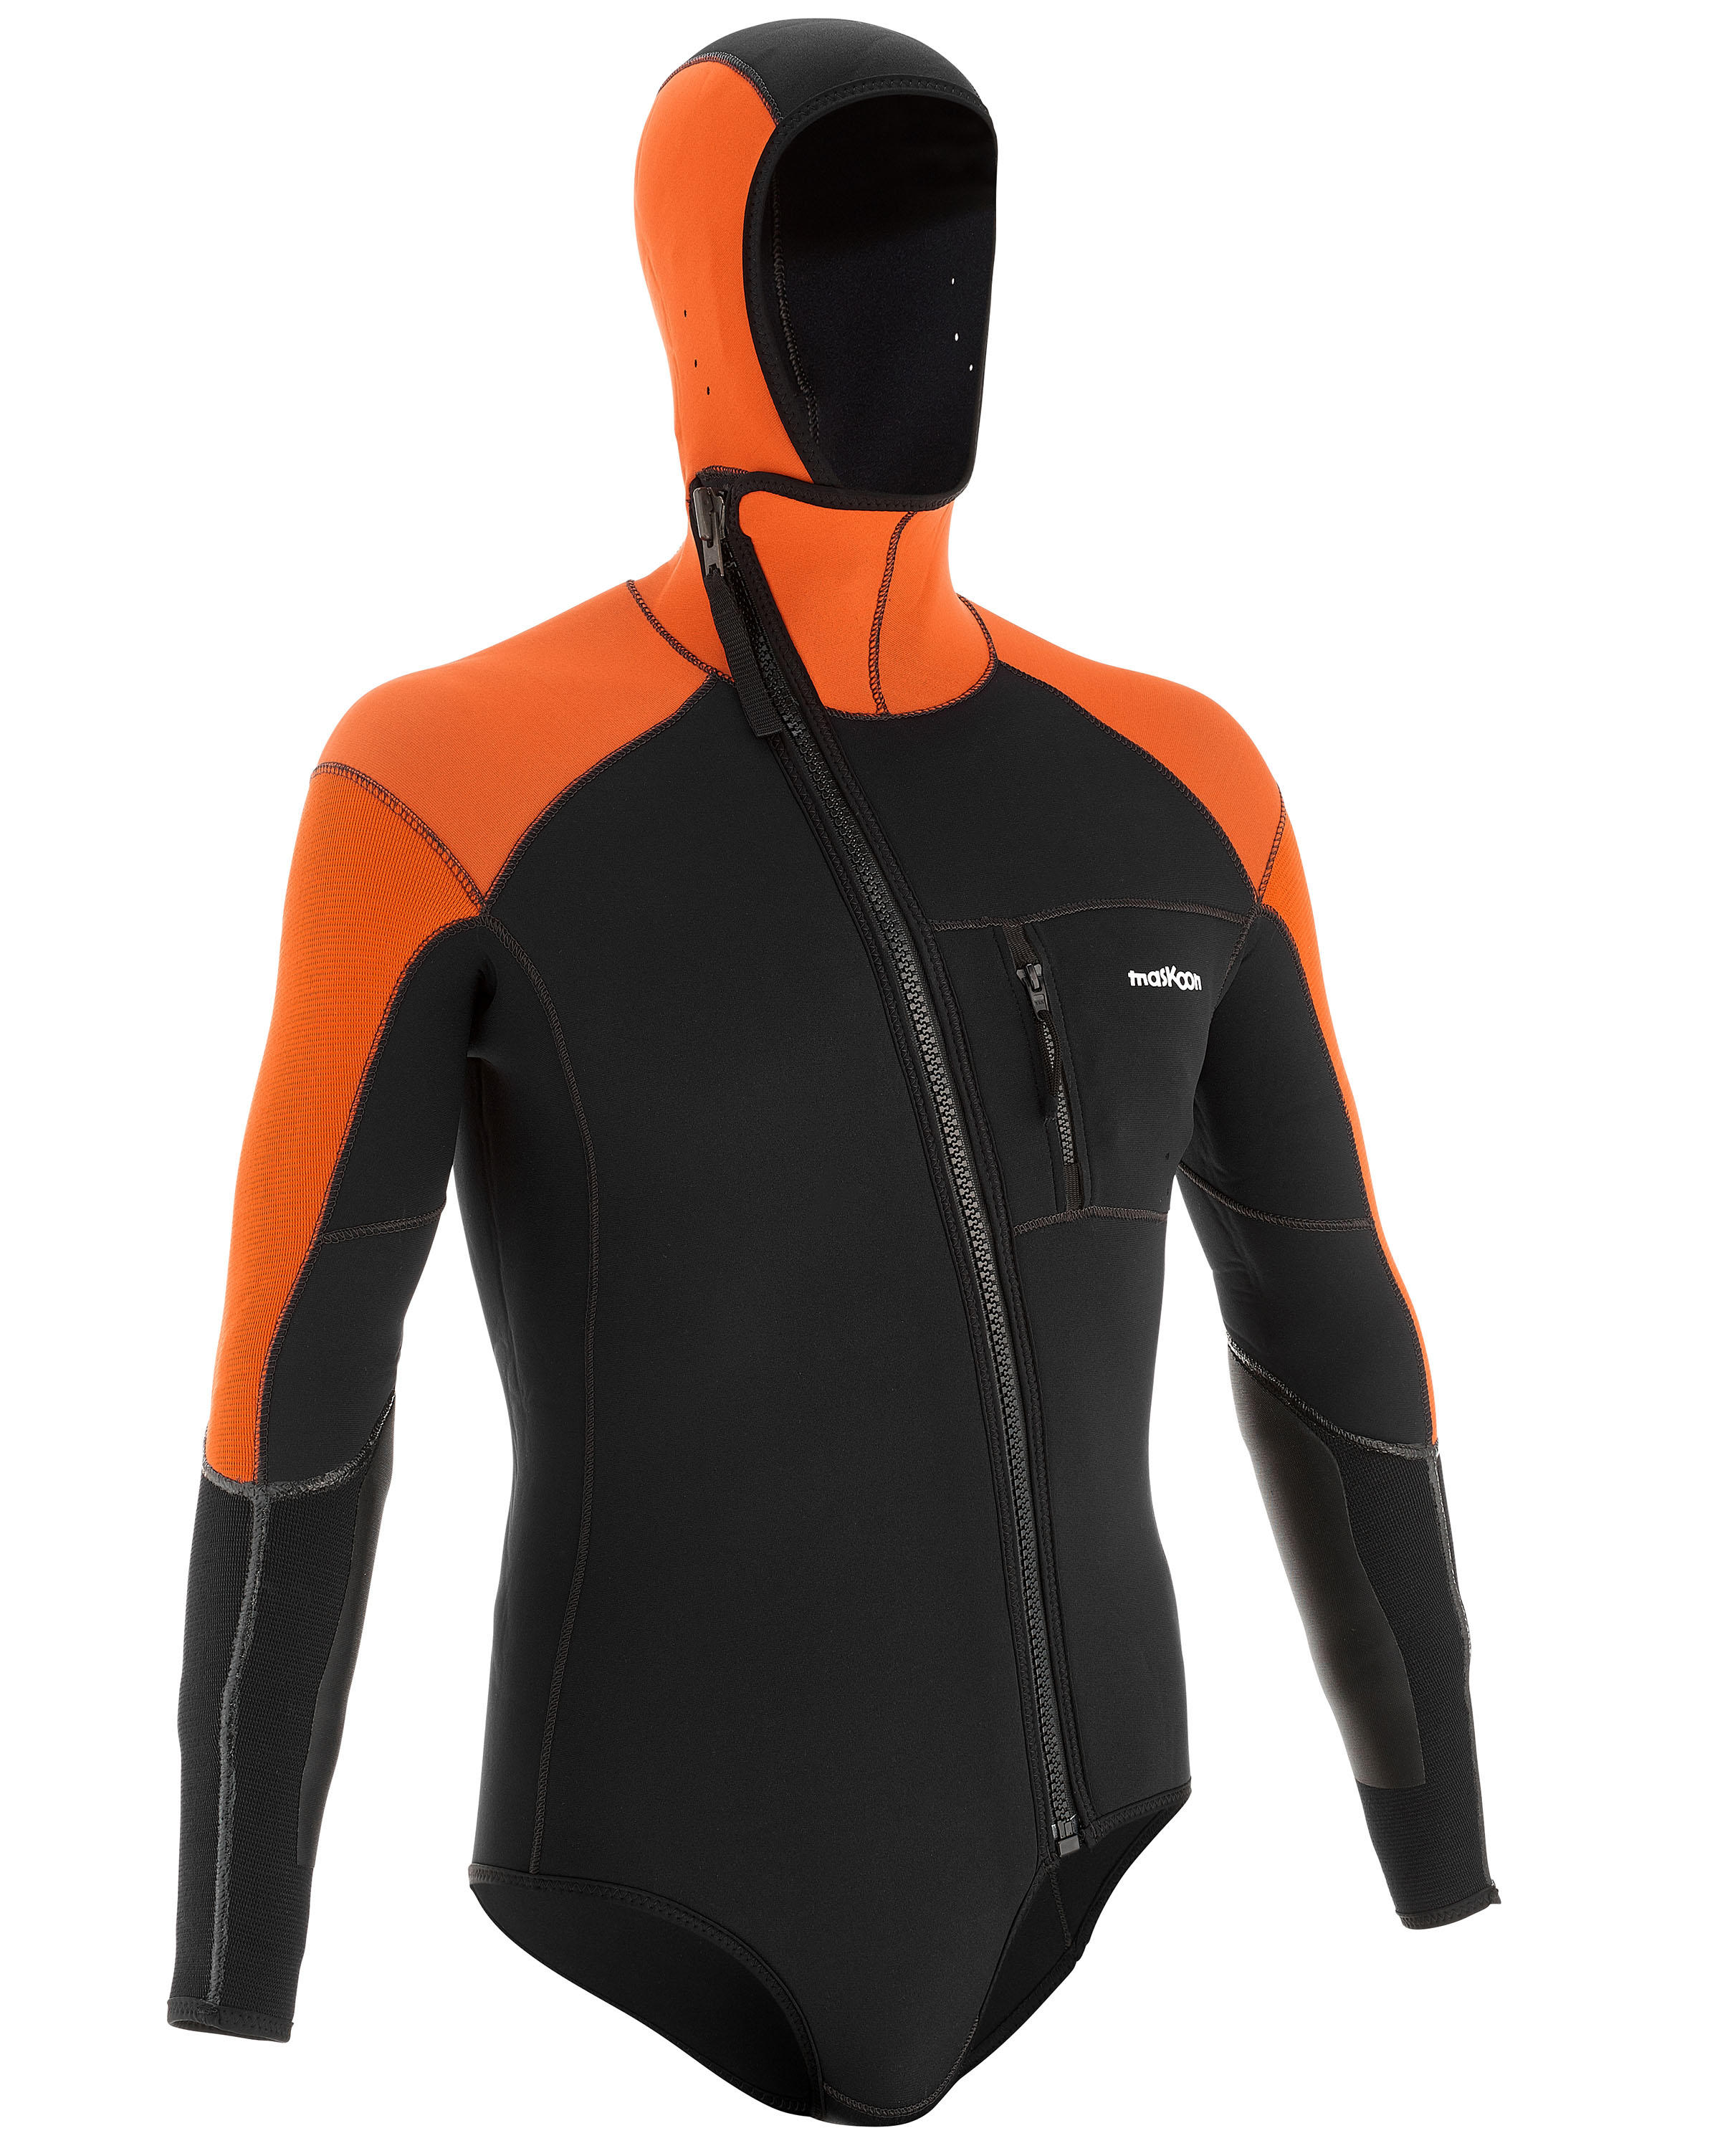 Maskoon Canyoning vest 5 mm